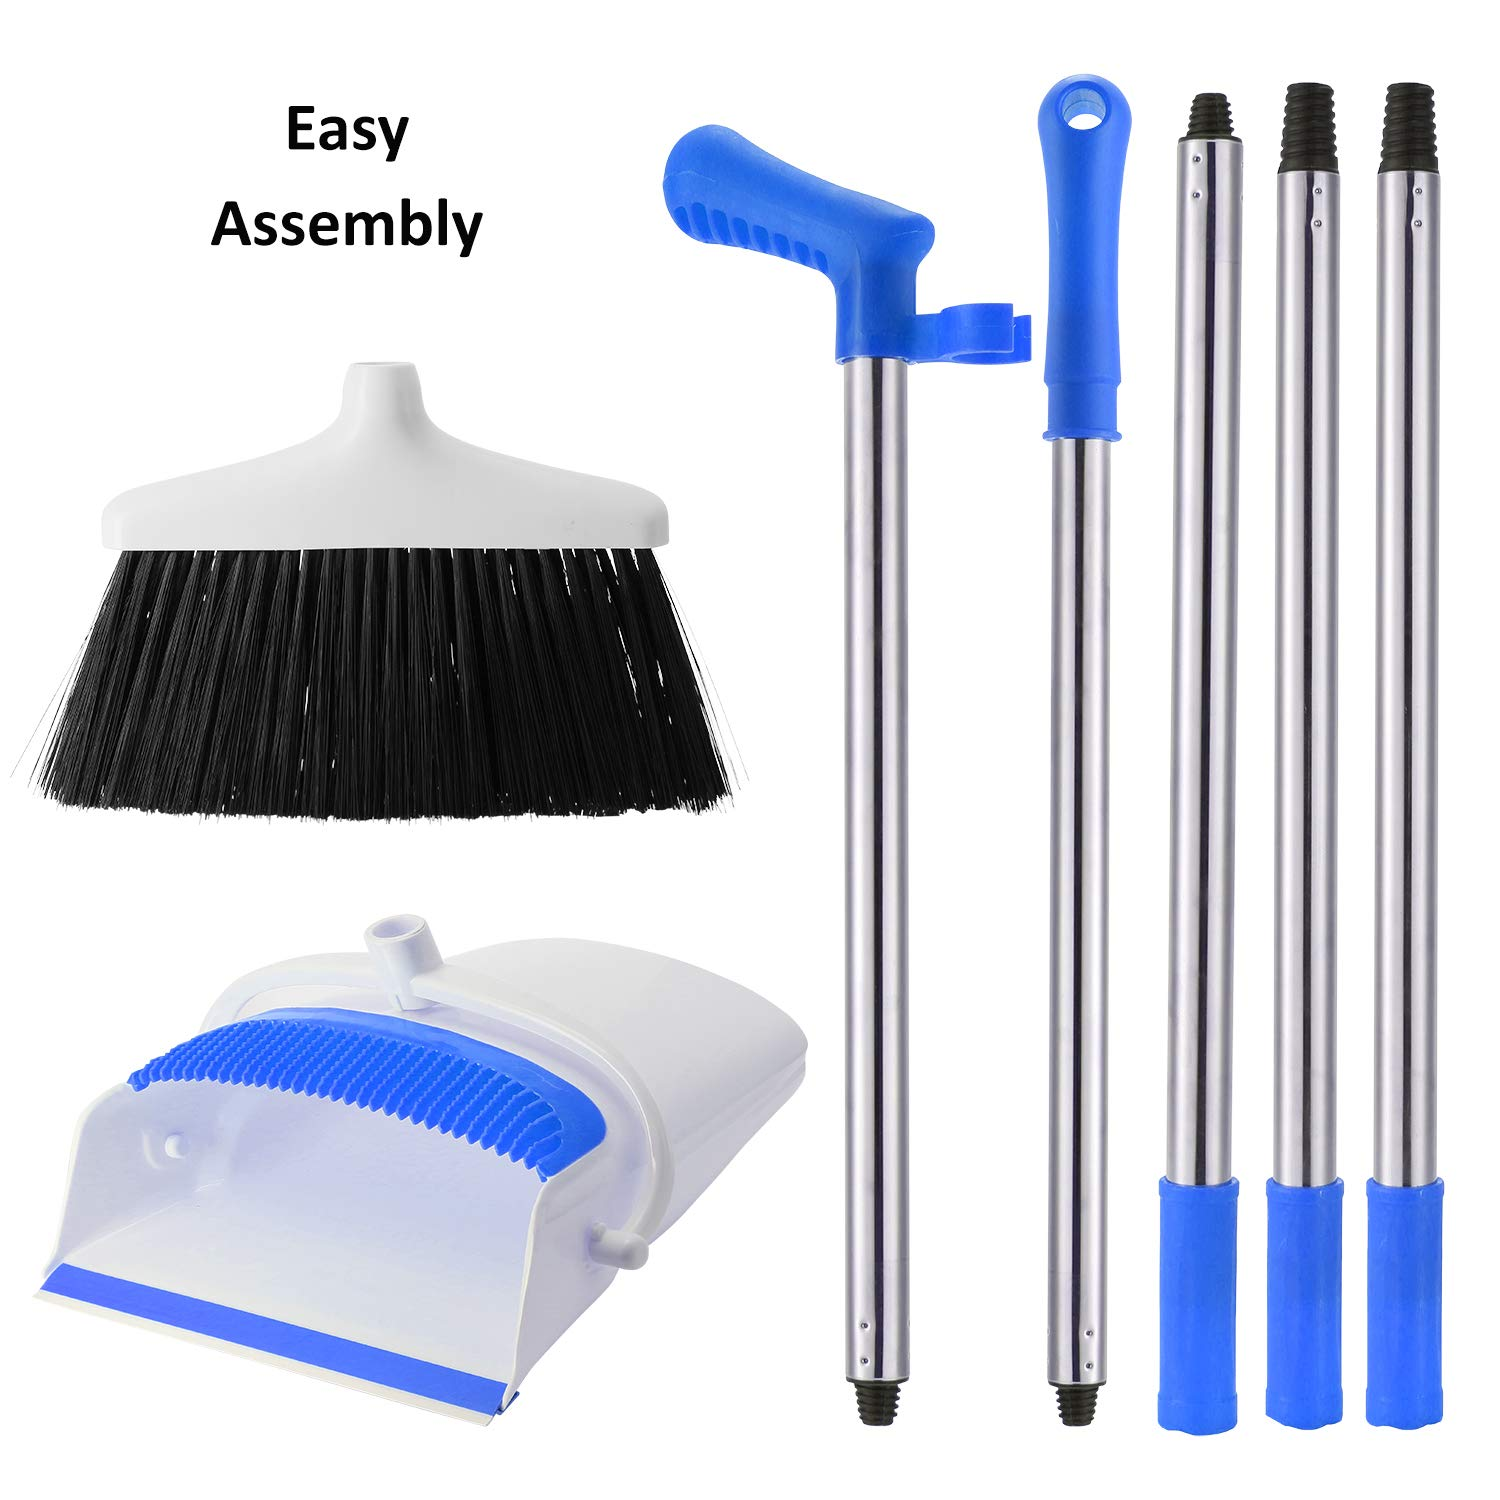 Broom And Dustpan Set - Strongest 30% Heavier Duty - Upright Standing Dust Pan With Extendable Broomstick For Easy Sweeping - Easy Assembly Great Use For Home, Office, Kitchen, Lobby Etc.- By Kray by kray (Image #5)